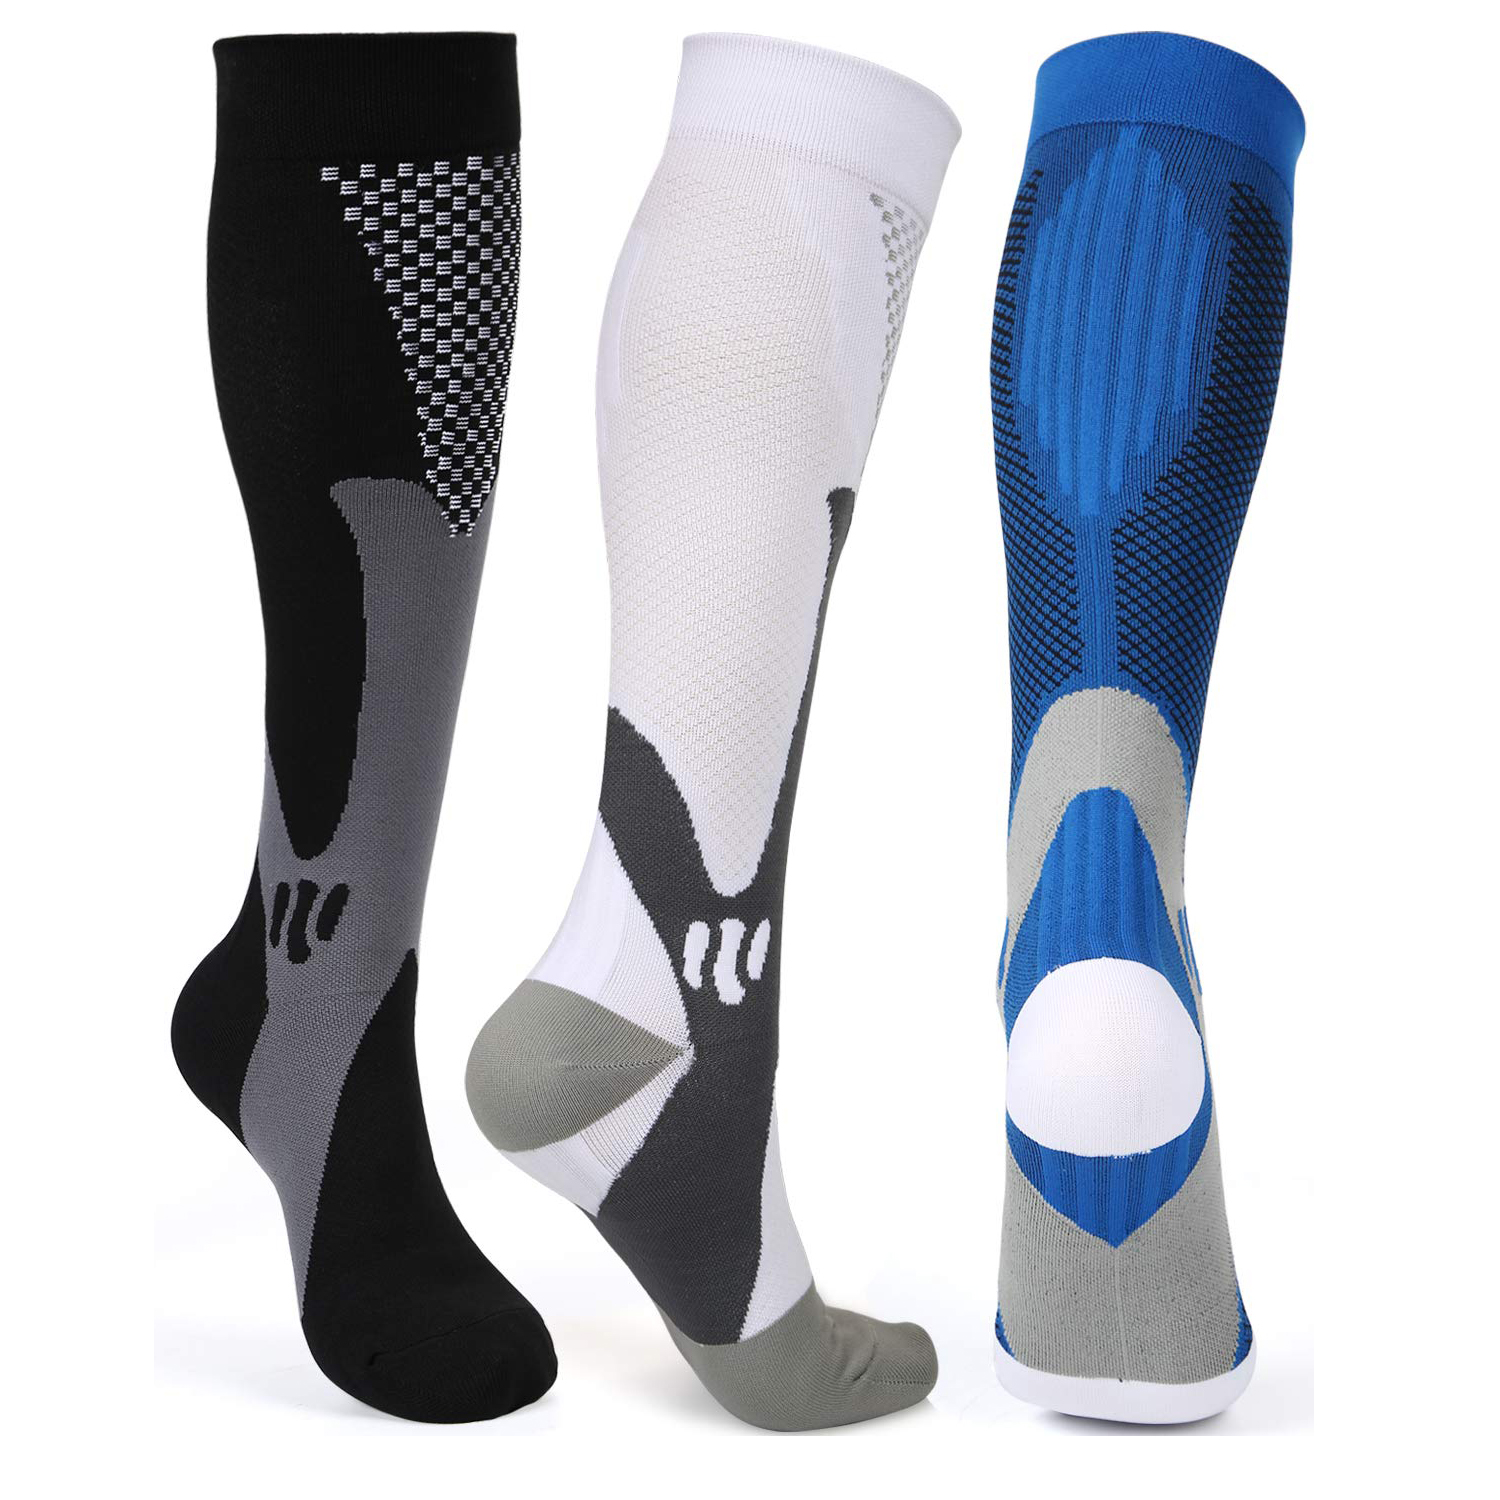 Brothock Compression Socks Nylon Medical Nursing Stockings Specializes Outdoor Cycling Fast-drying Breathable Adult Sports Socks 1